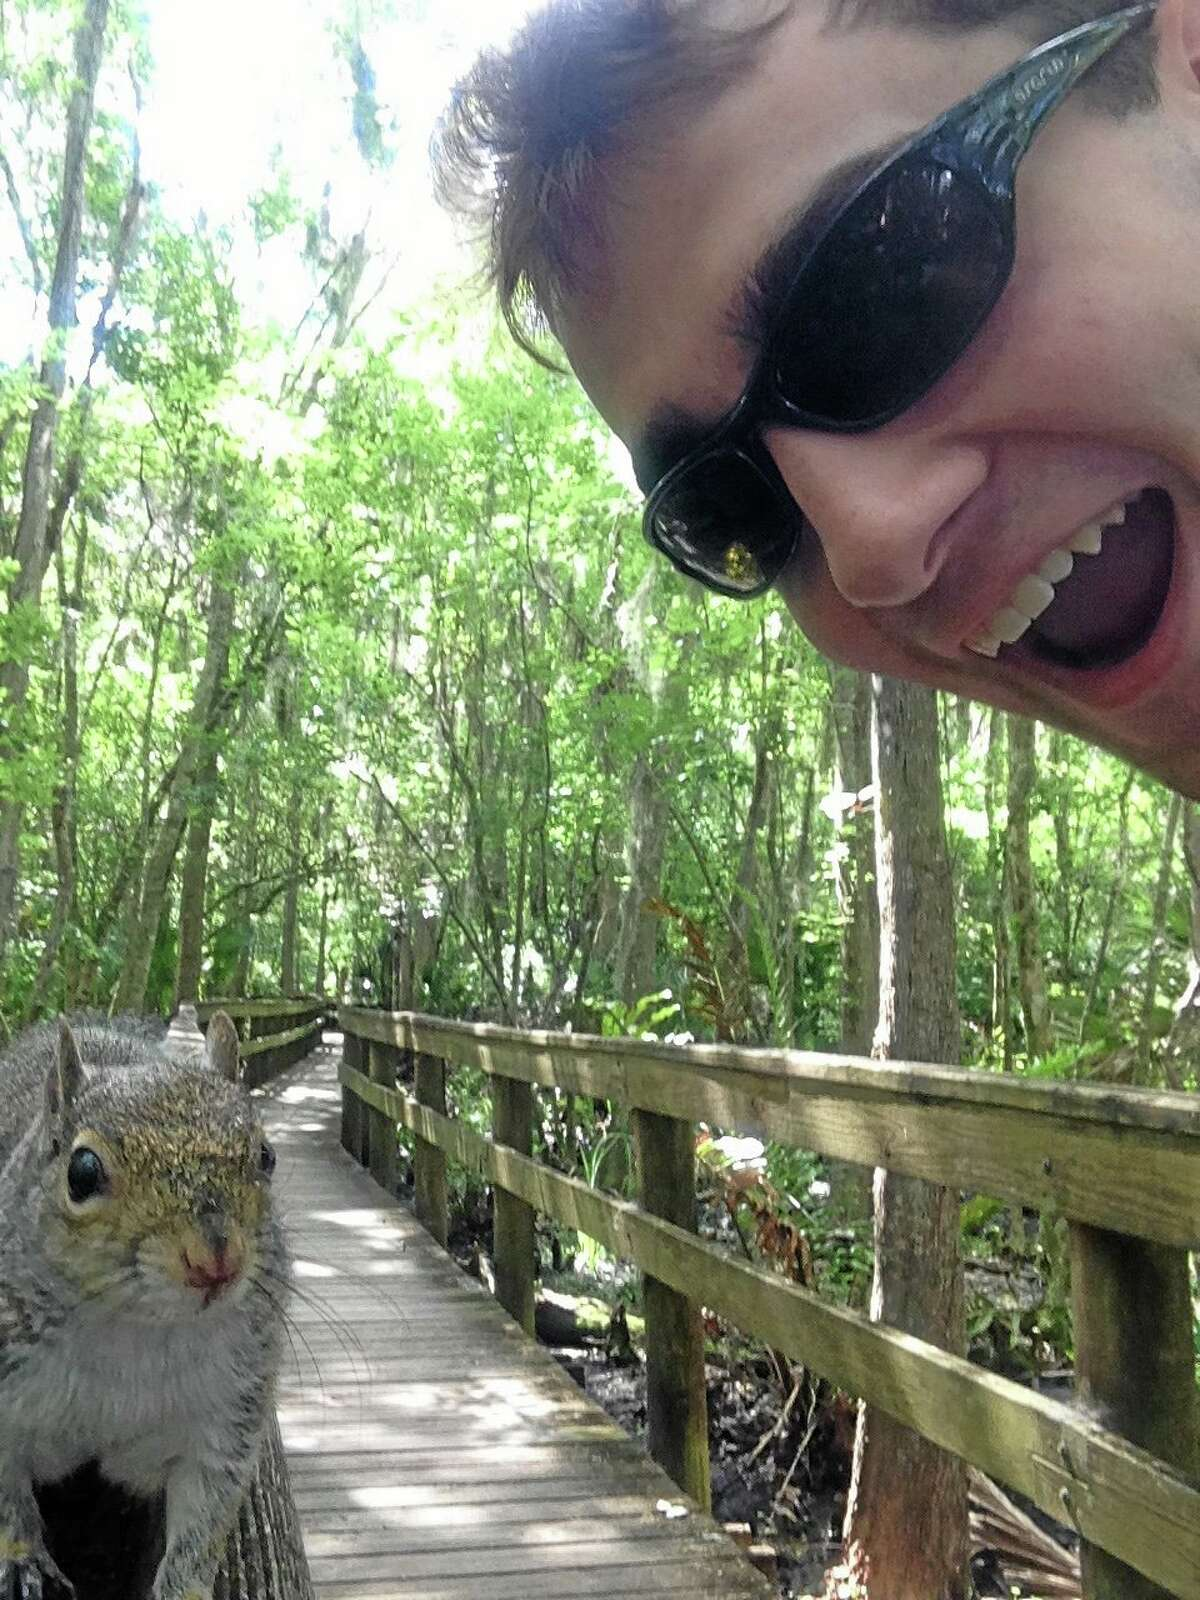 A squirrel approaches Brian Genest as he takes a photo of himself at John Chestnut Park near Tampa, Florida.